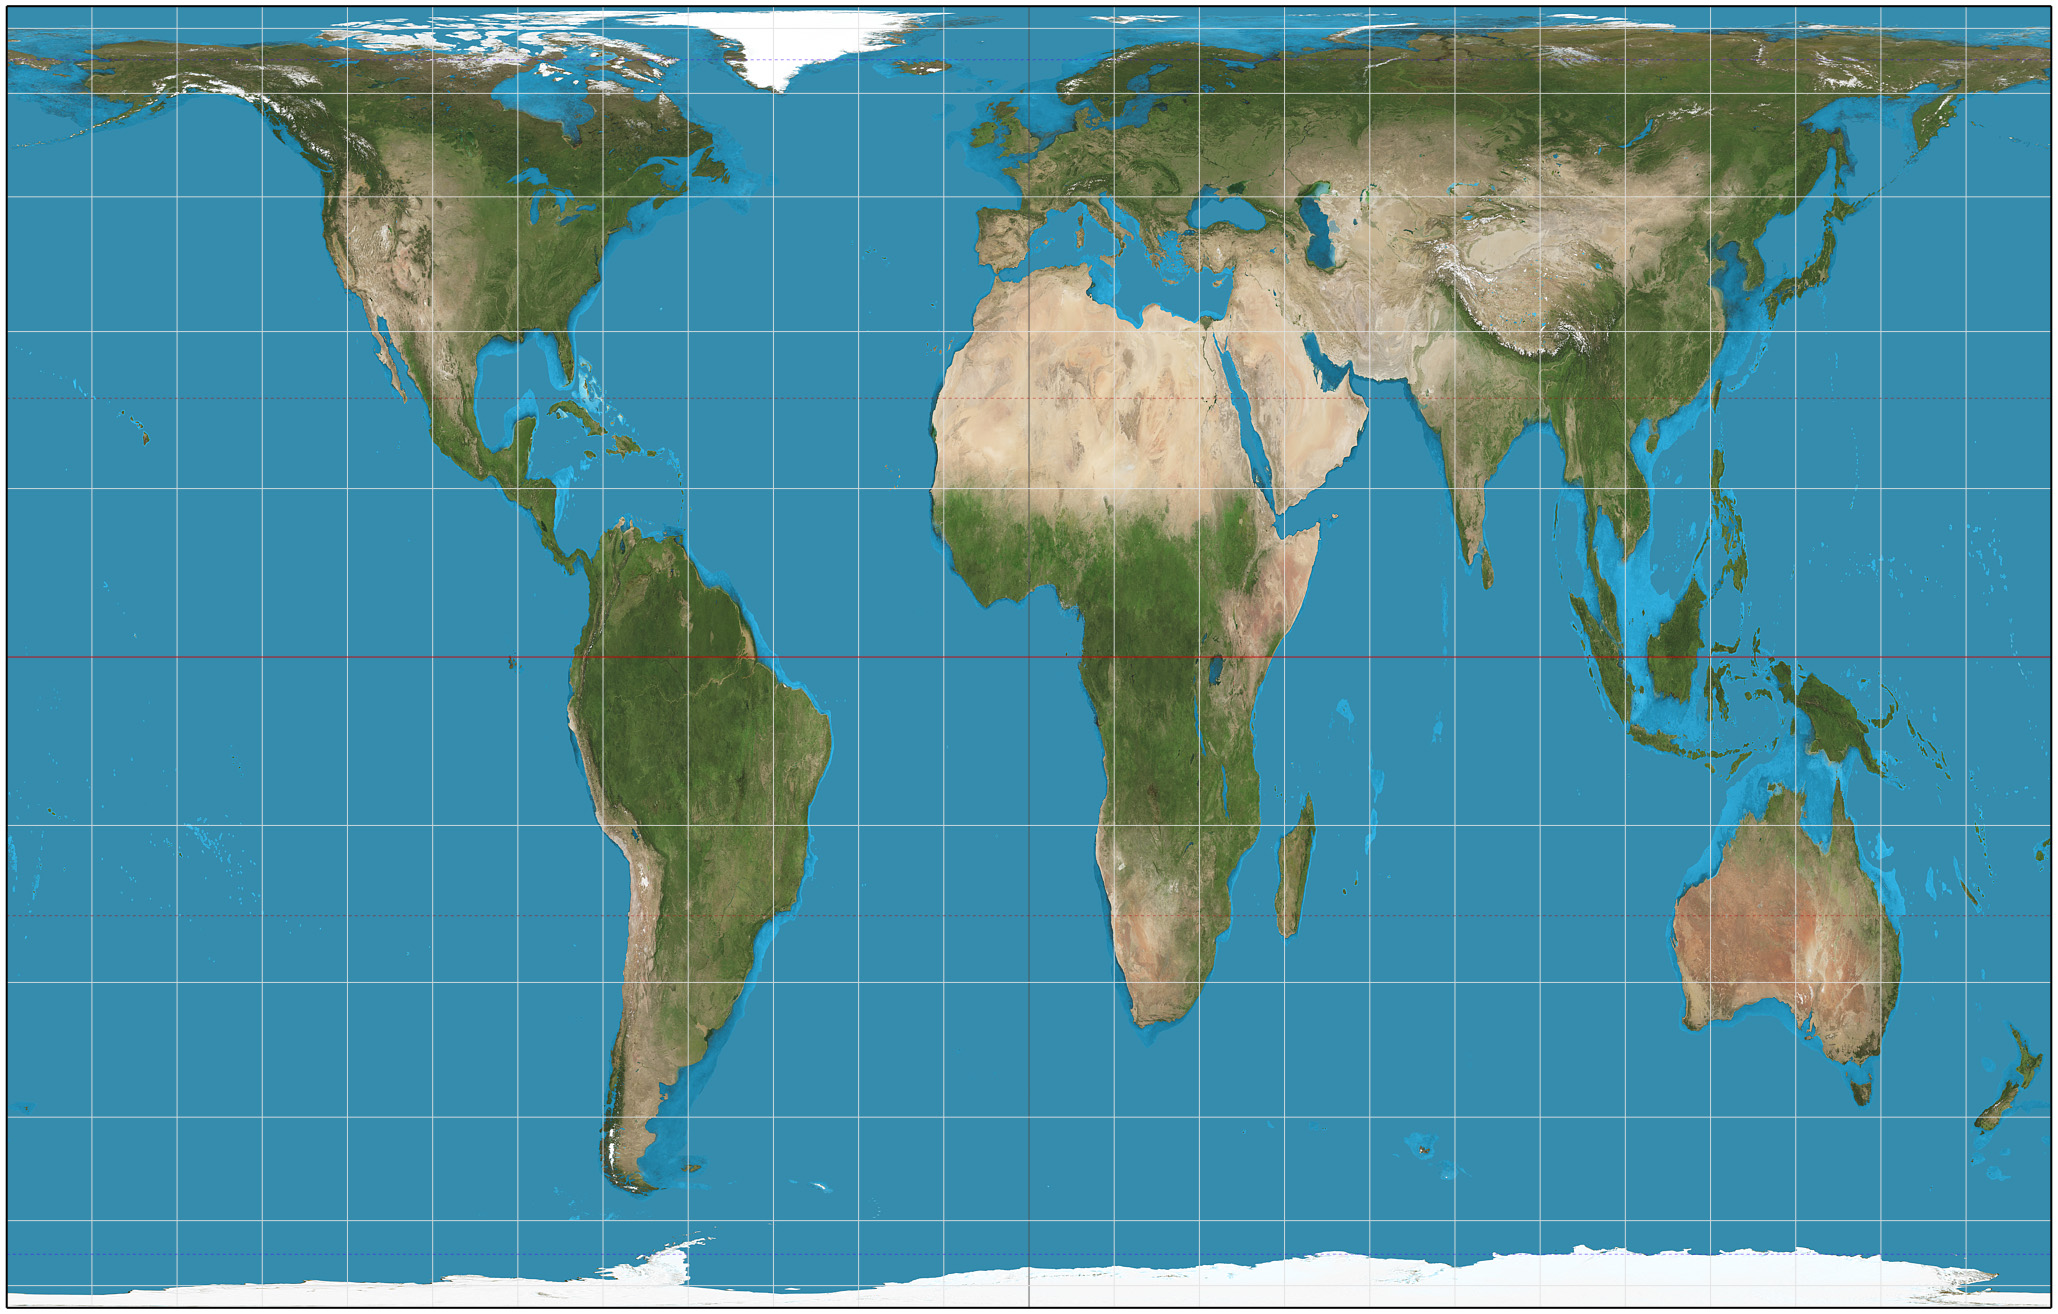 map of the world according to Gall-Peters projection shows the relative size of countries accurately